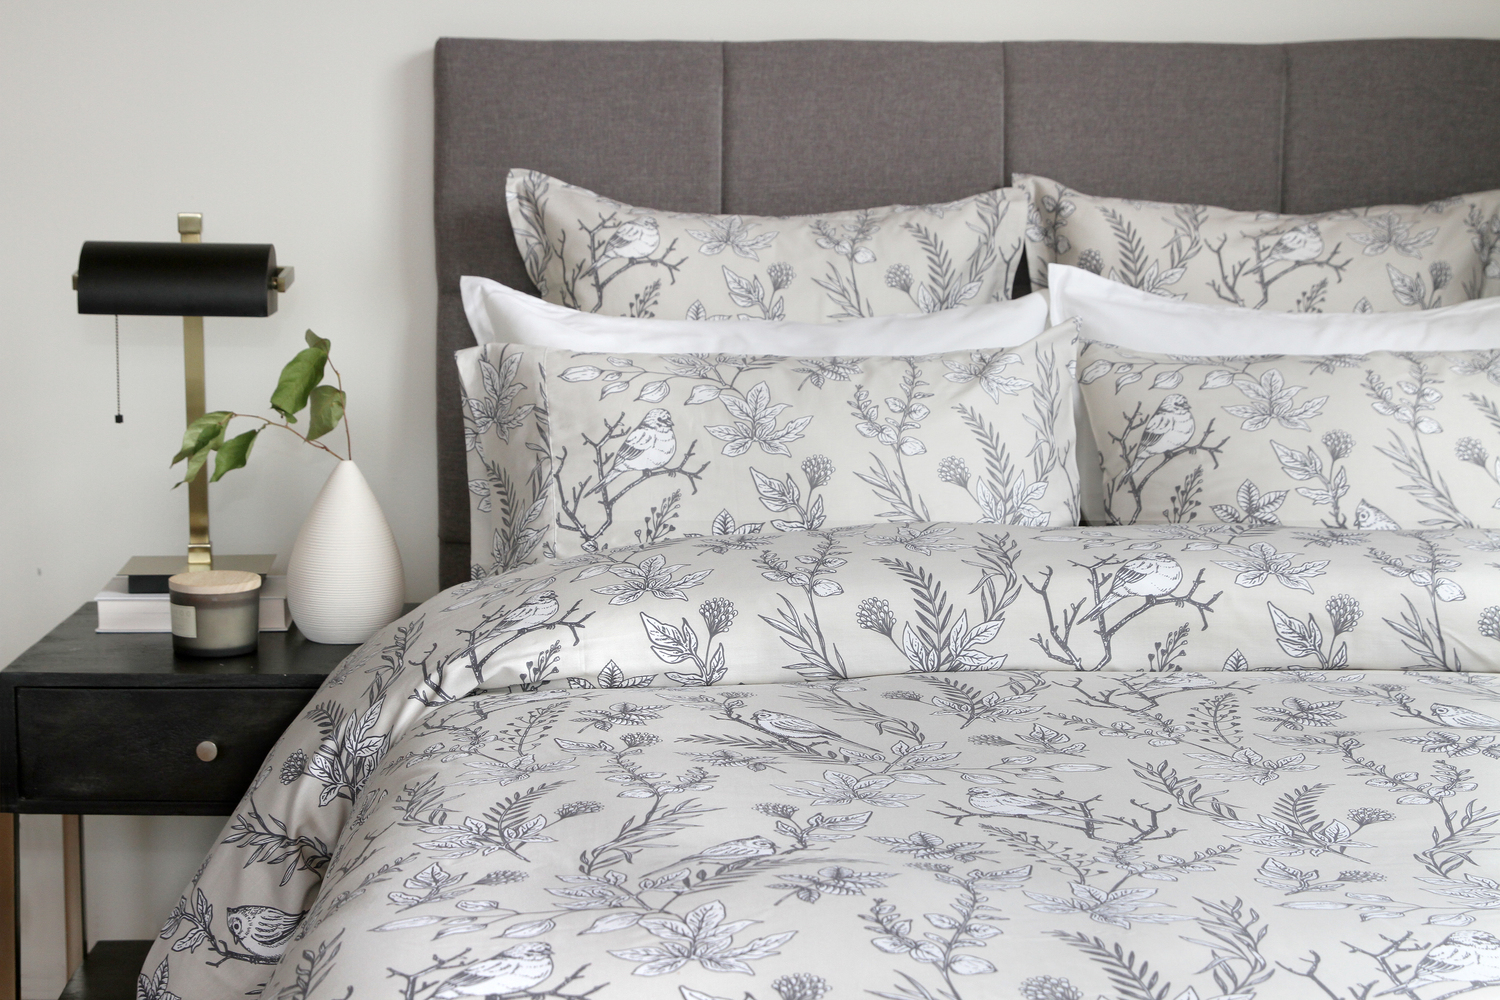 Avery by CD Bedding of CA